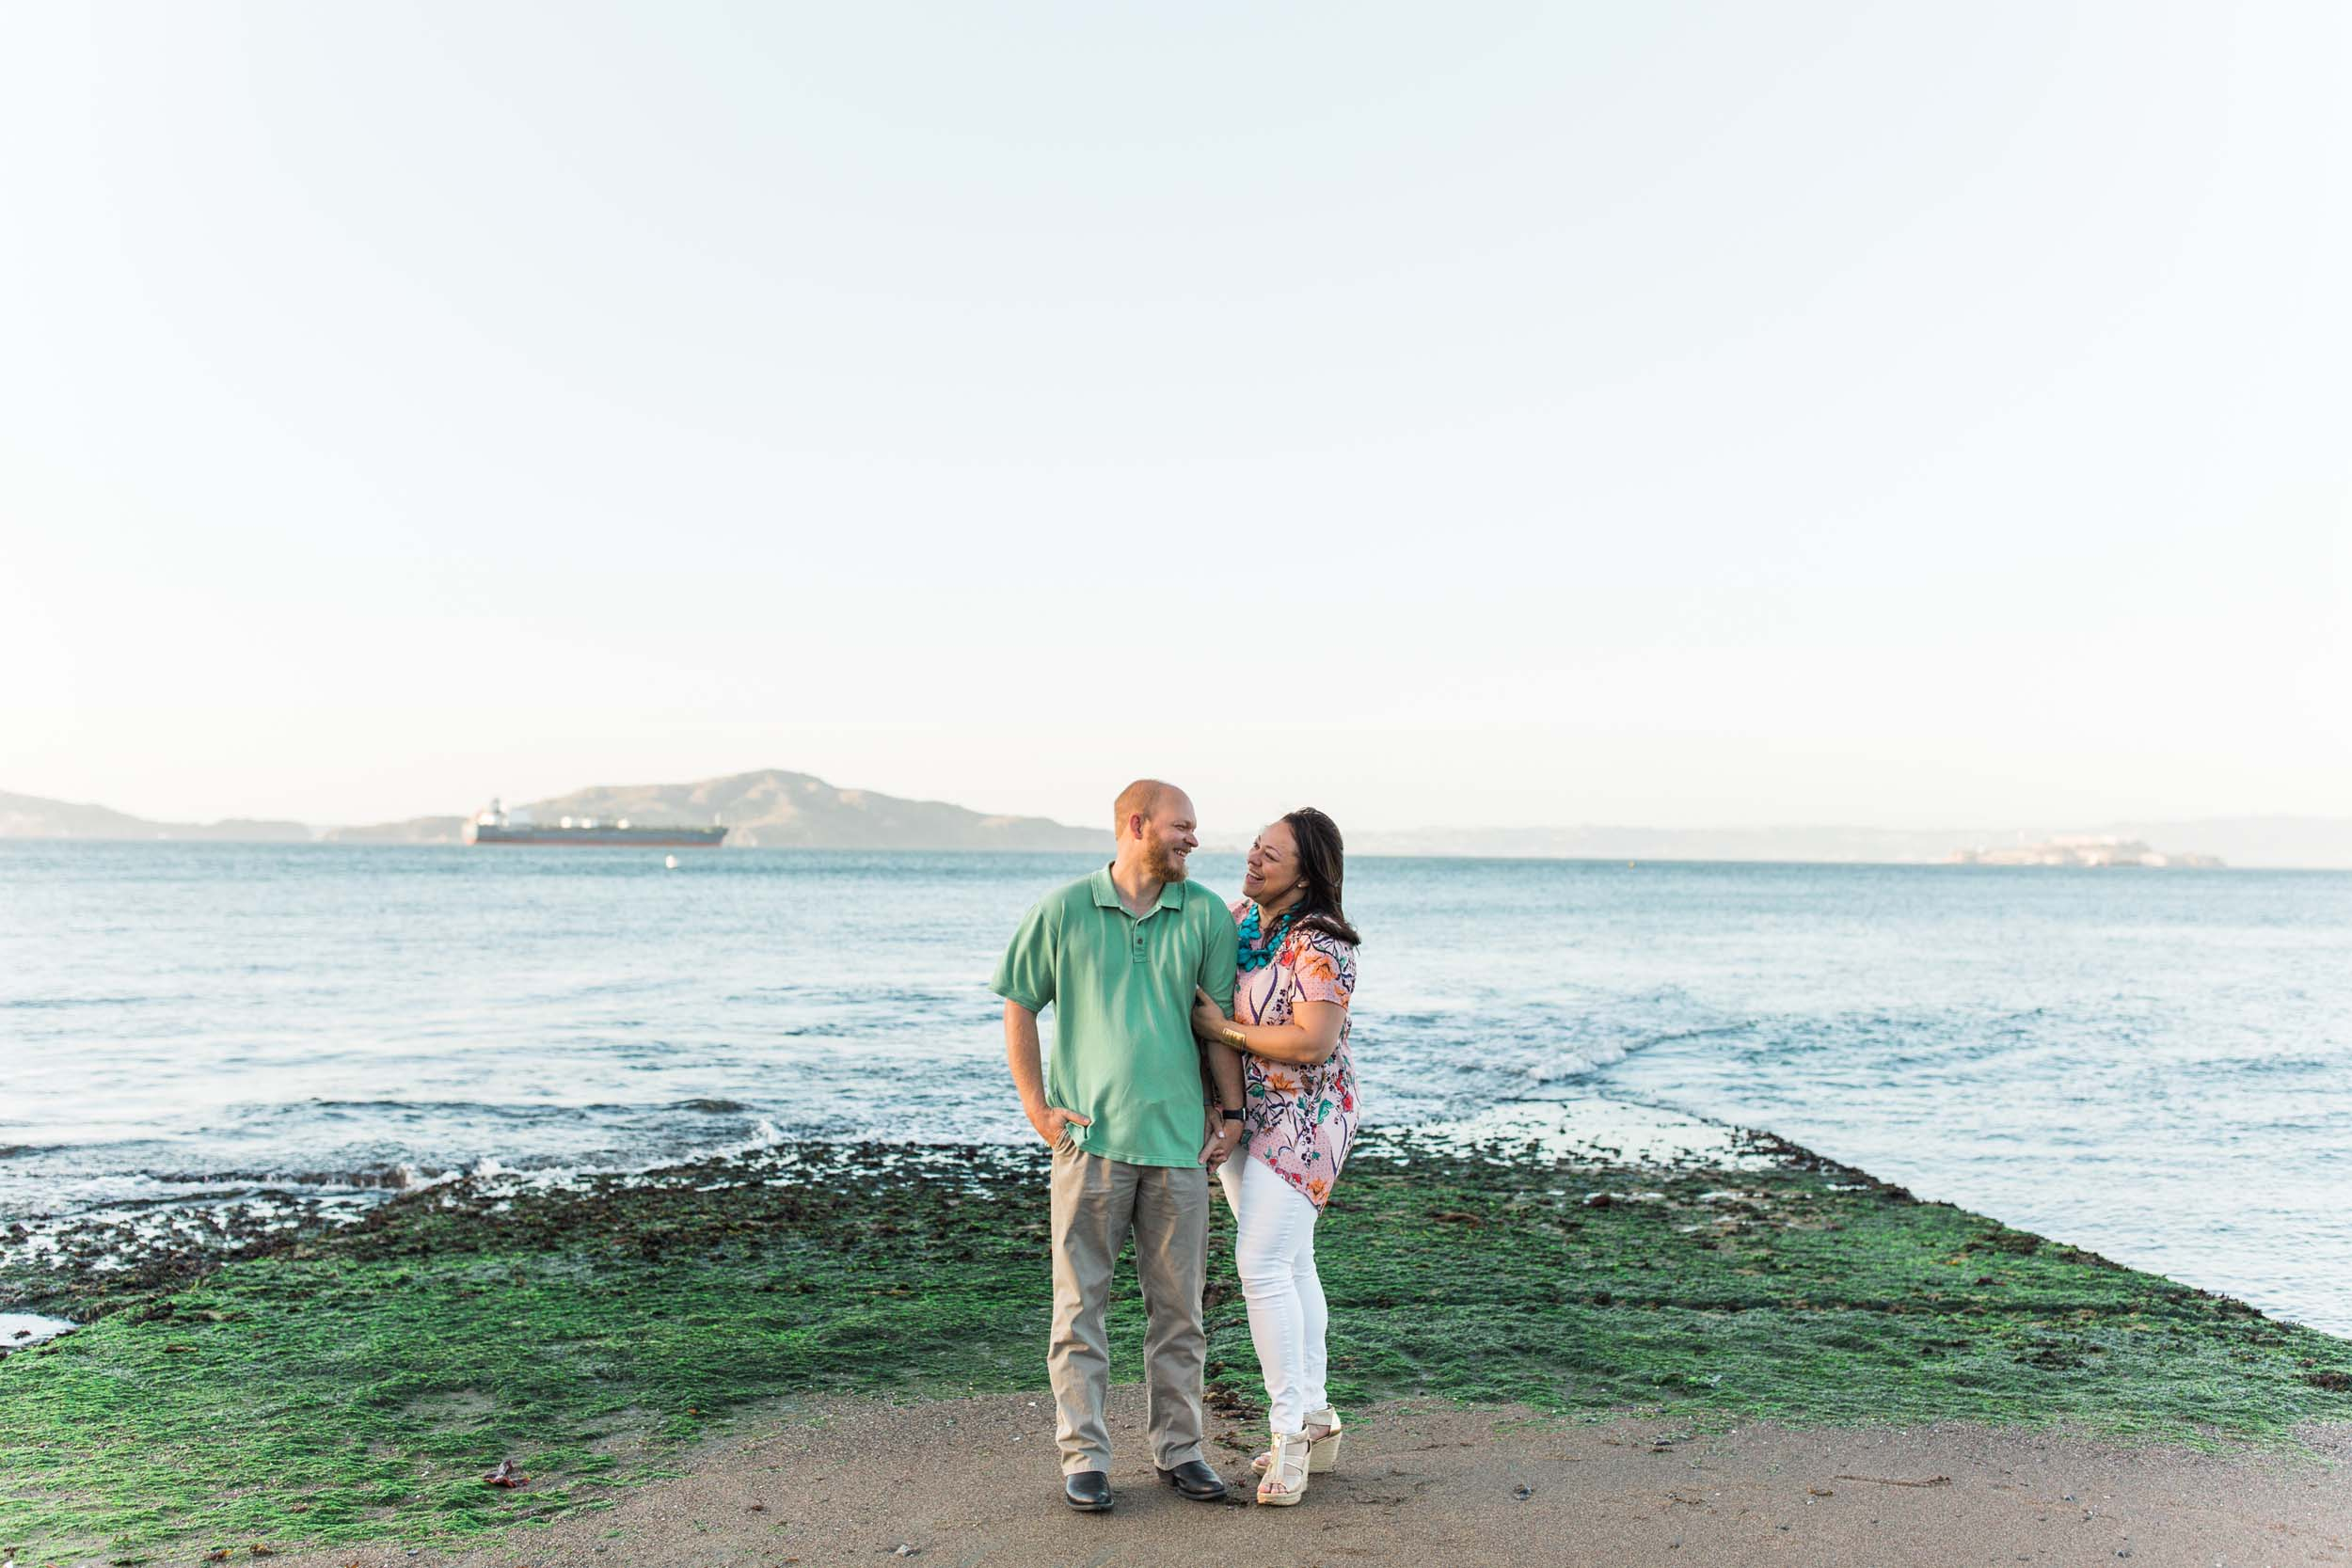 A couple looks at each other and smiles overlooking the water in San Francisco.